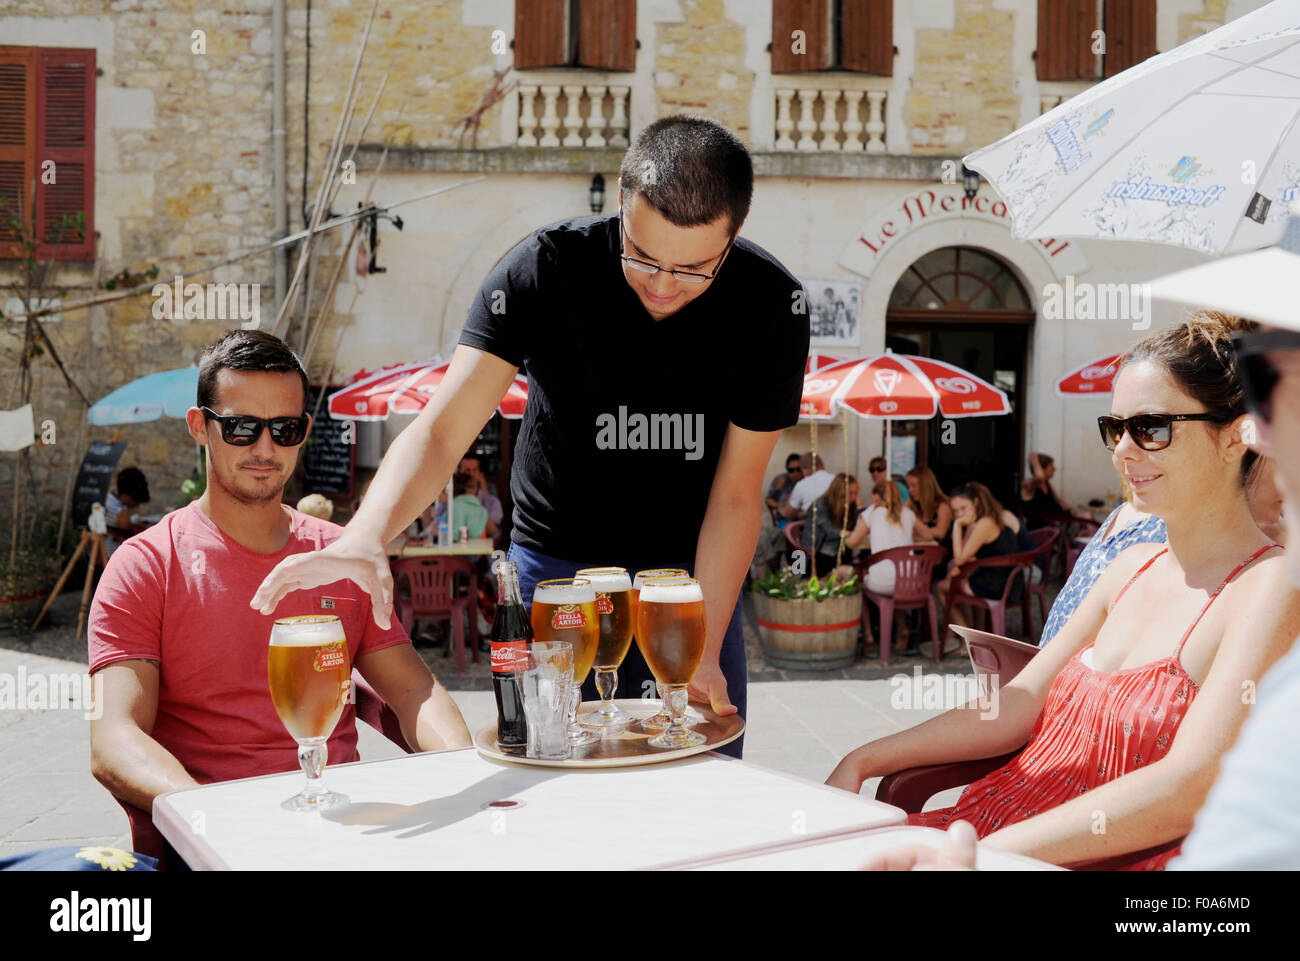 Waiter serving up Stella Artois cold beers to tourists at Puy-l'Eveque  a small town in France situated in - Stock Image